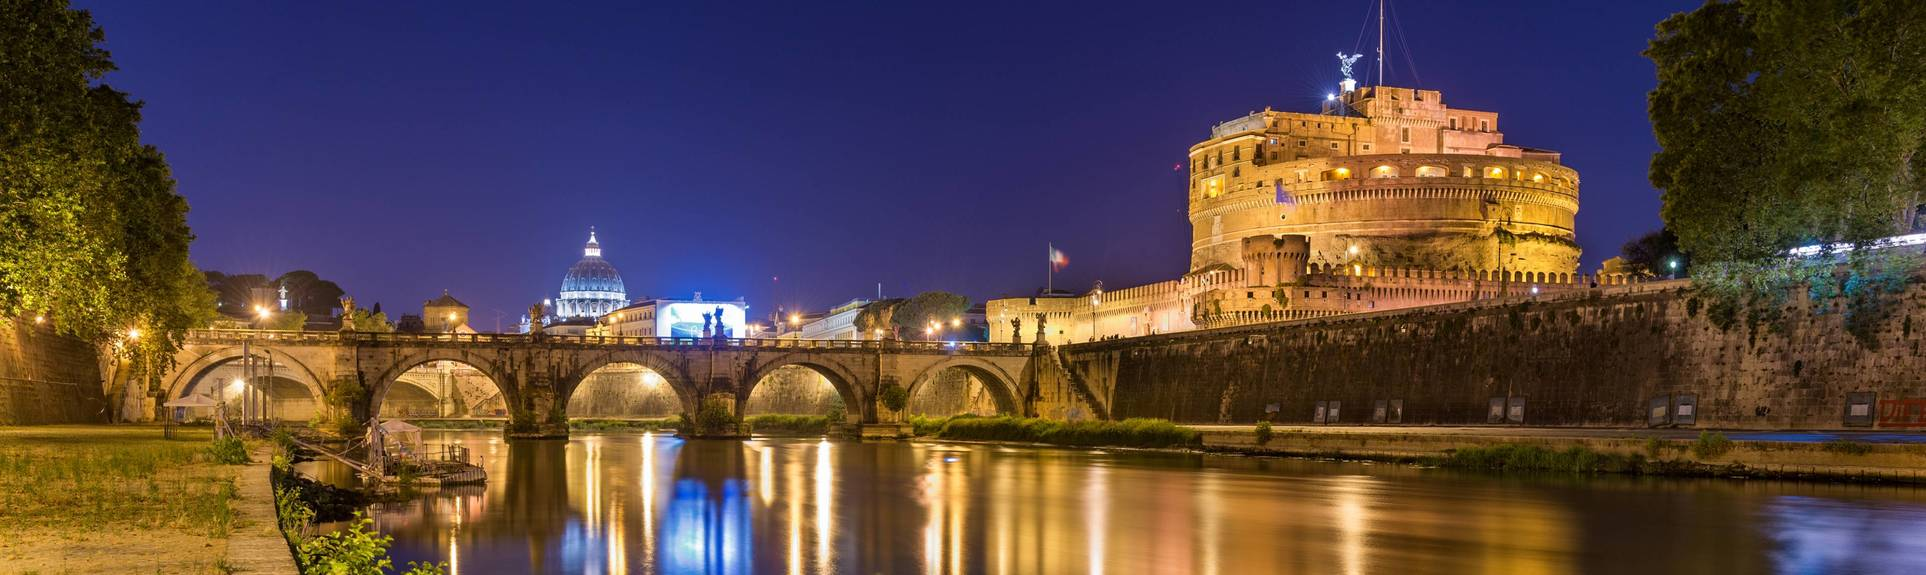 Illuminated night view of Angel Bridge and Castel Sant'Angelo in Rome